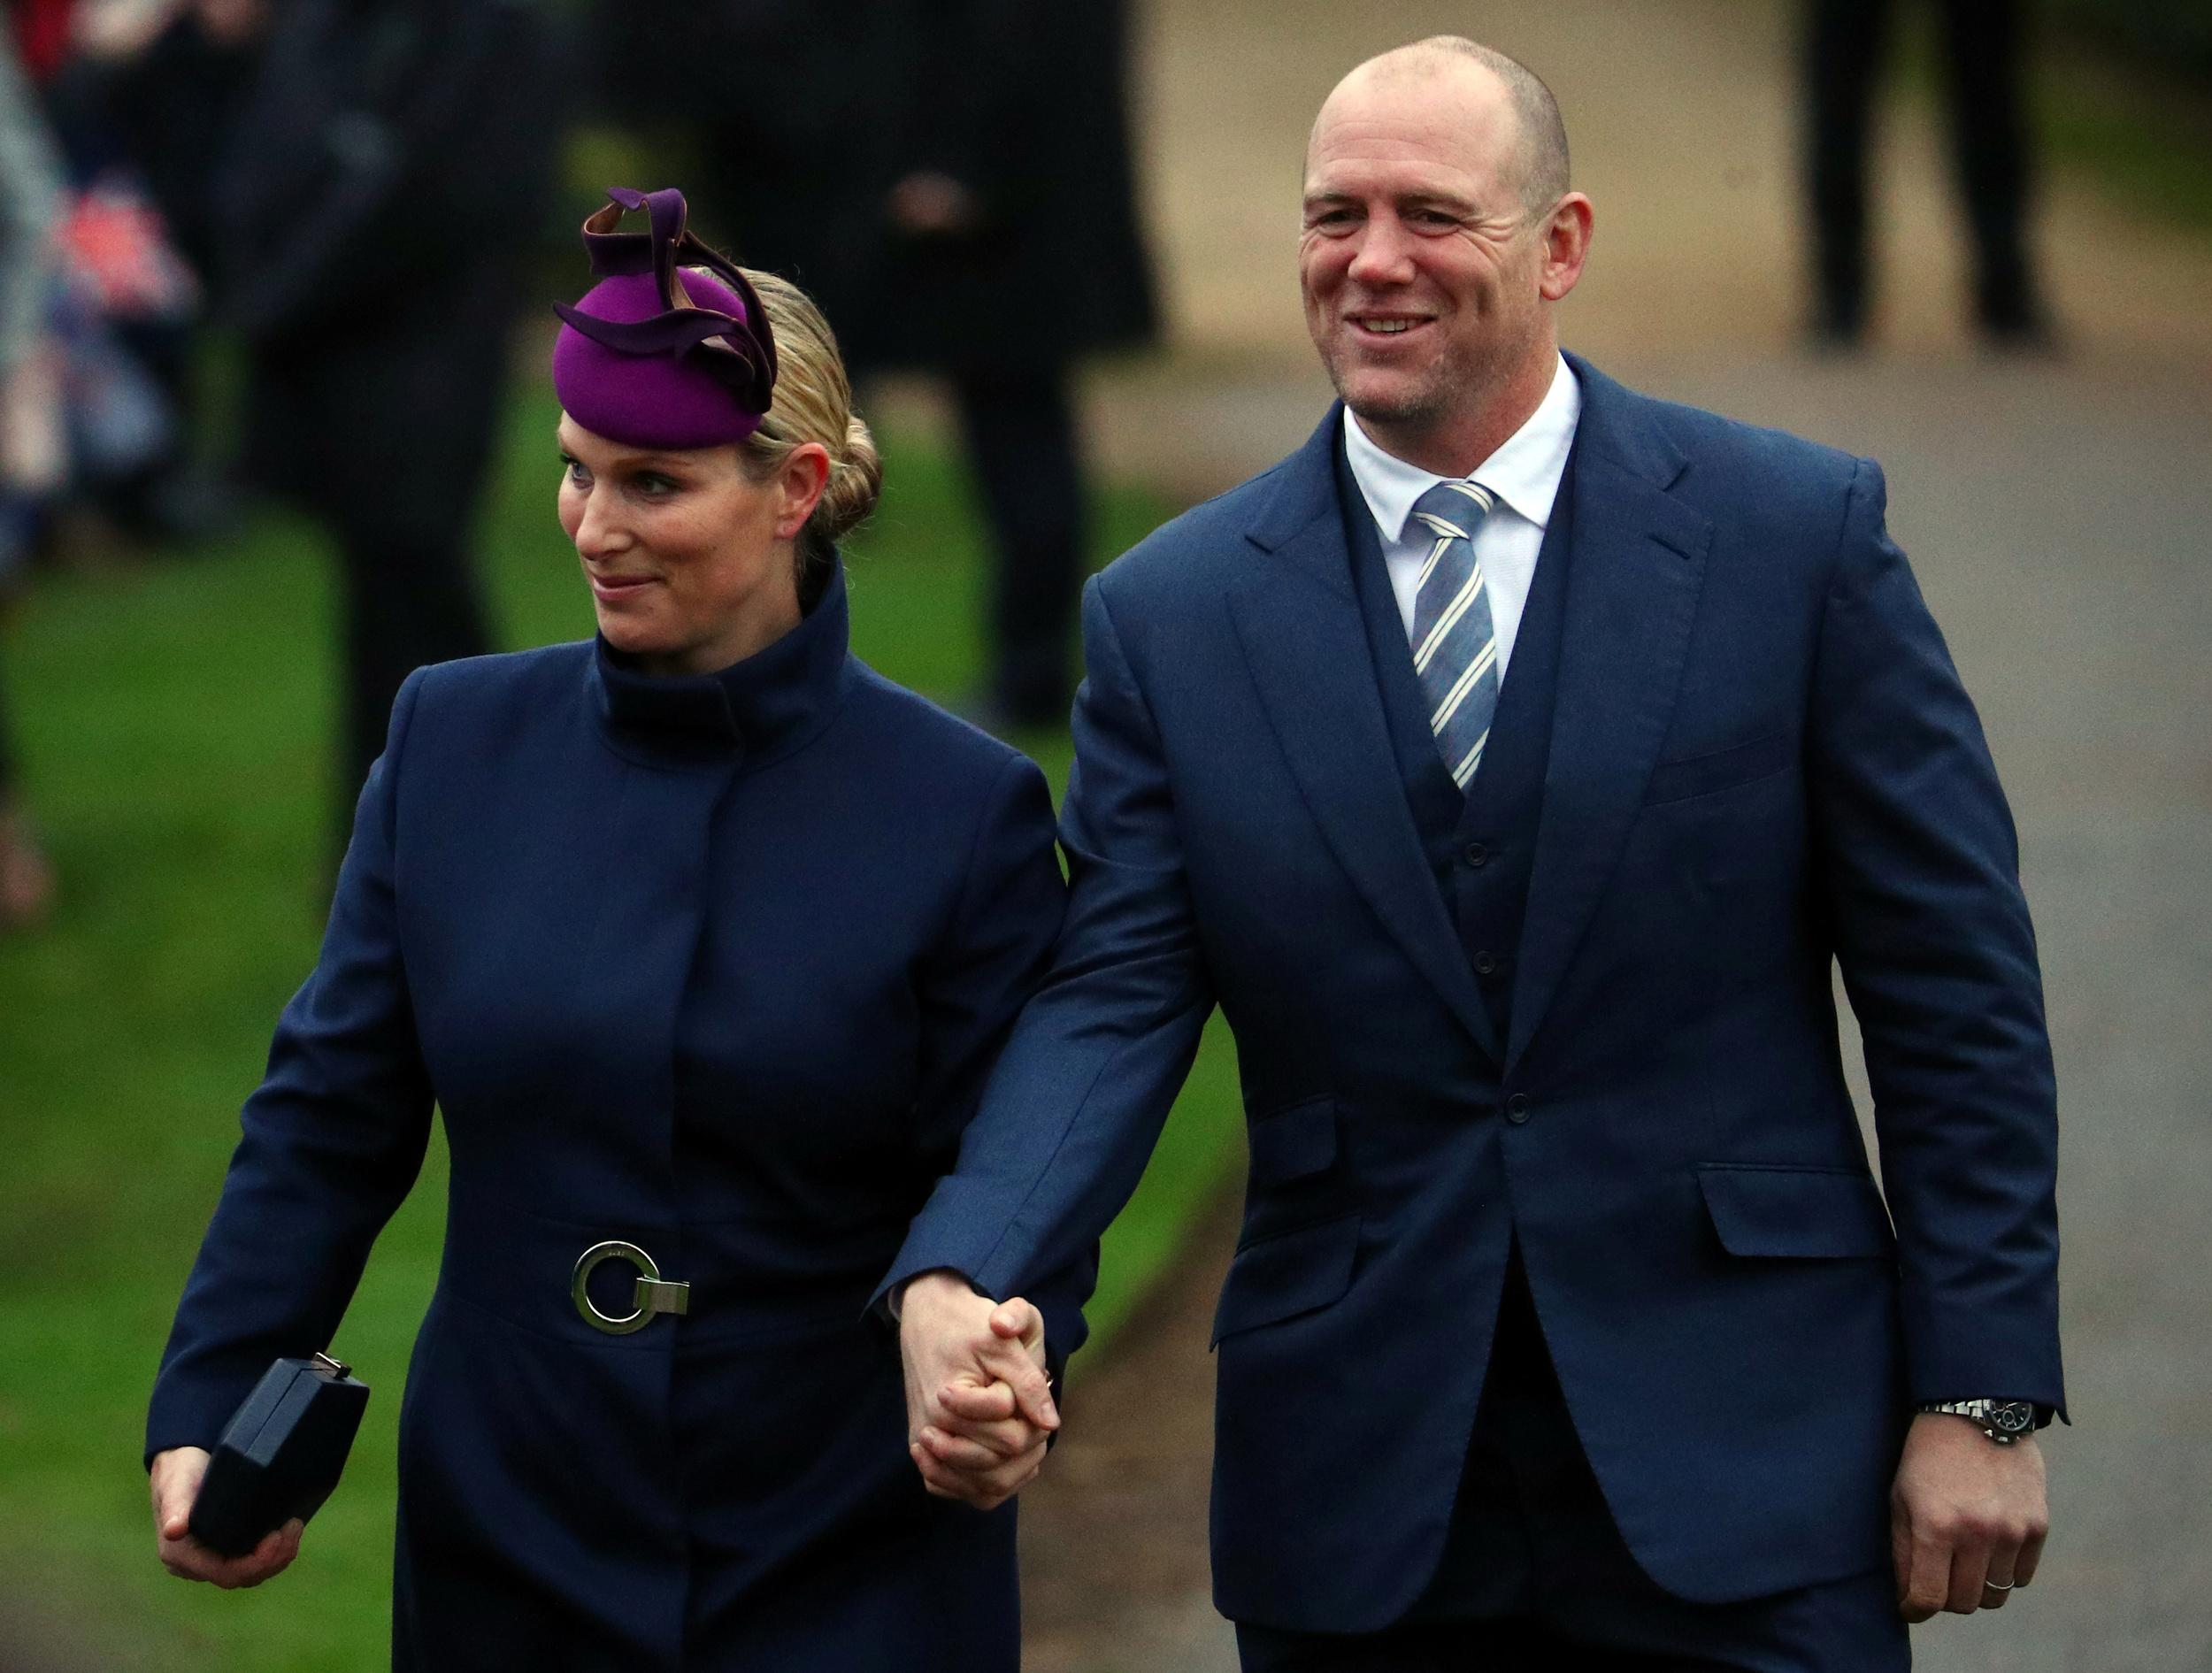 Zara Phillips and Mike Tindall arrive at St Mary Magdalene's church for the Royal Family's Christmas Day service on the Sandringham estate in eastern England, Britain, December 25, 2018. REUTERS/Hannah McKay